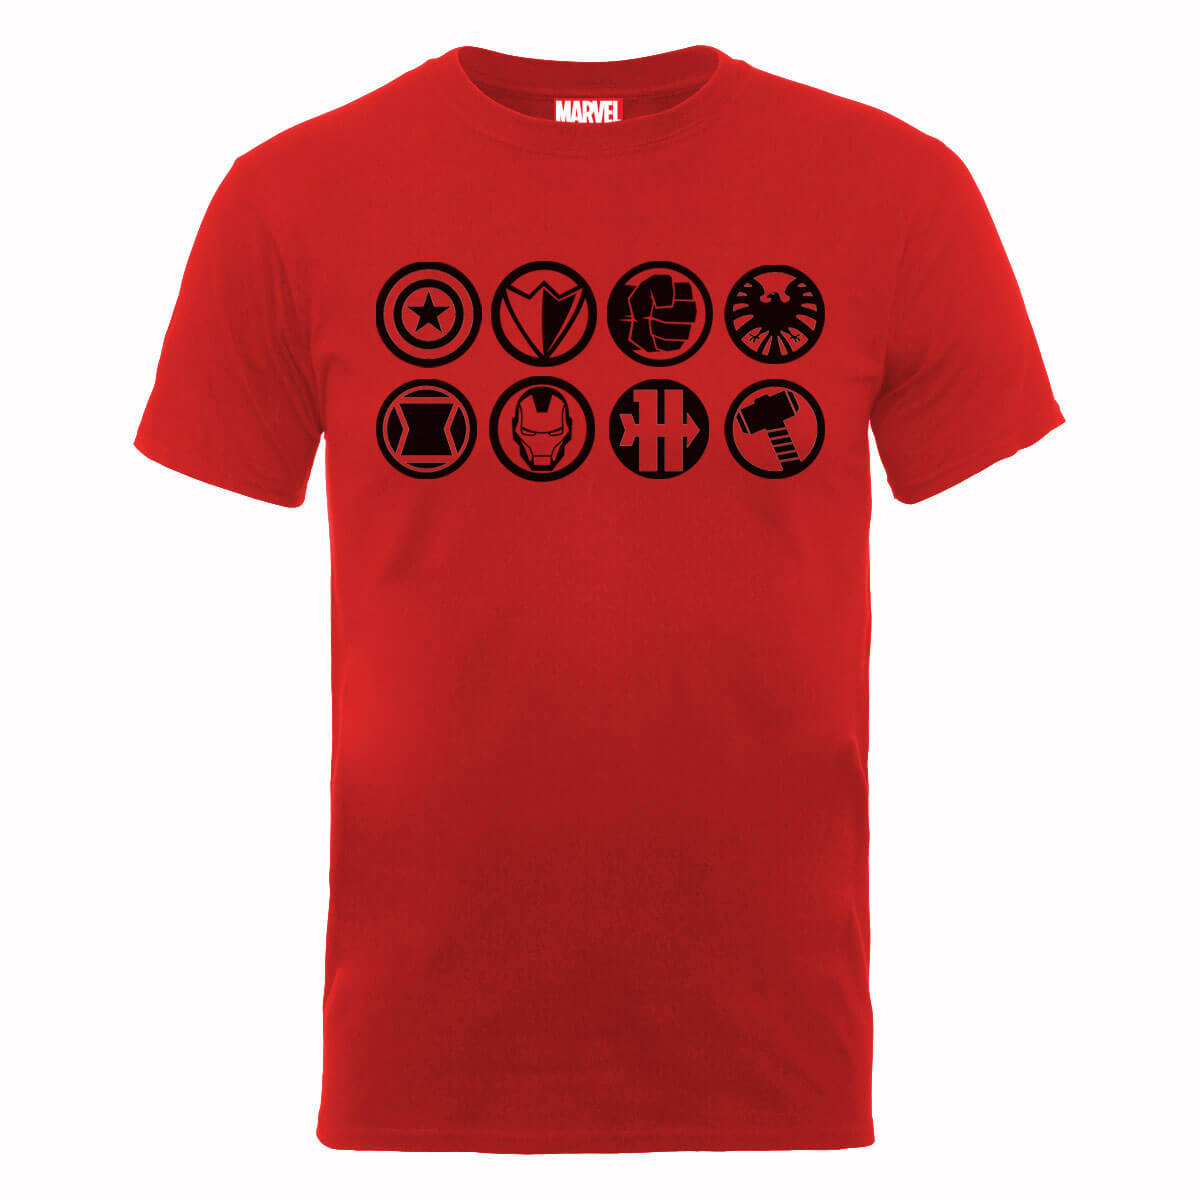 Marvel Avengers Assemble Team Icons T-Shirt - Red